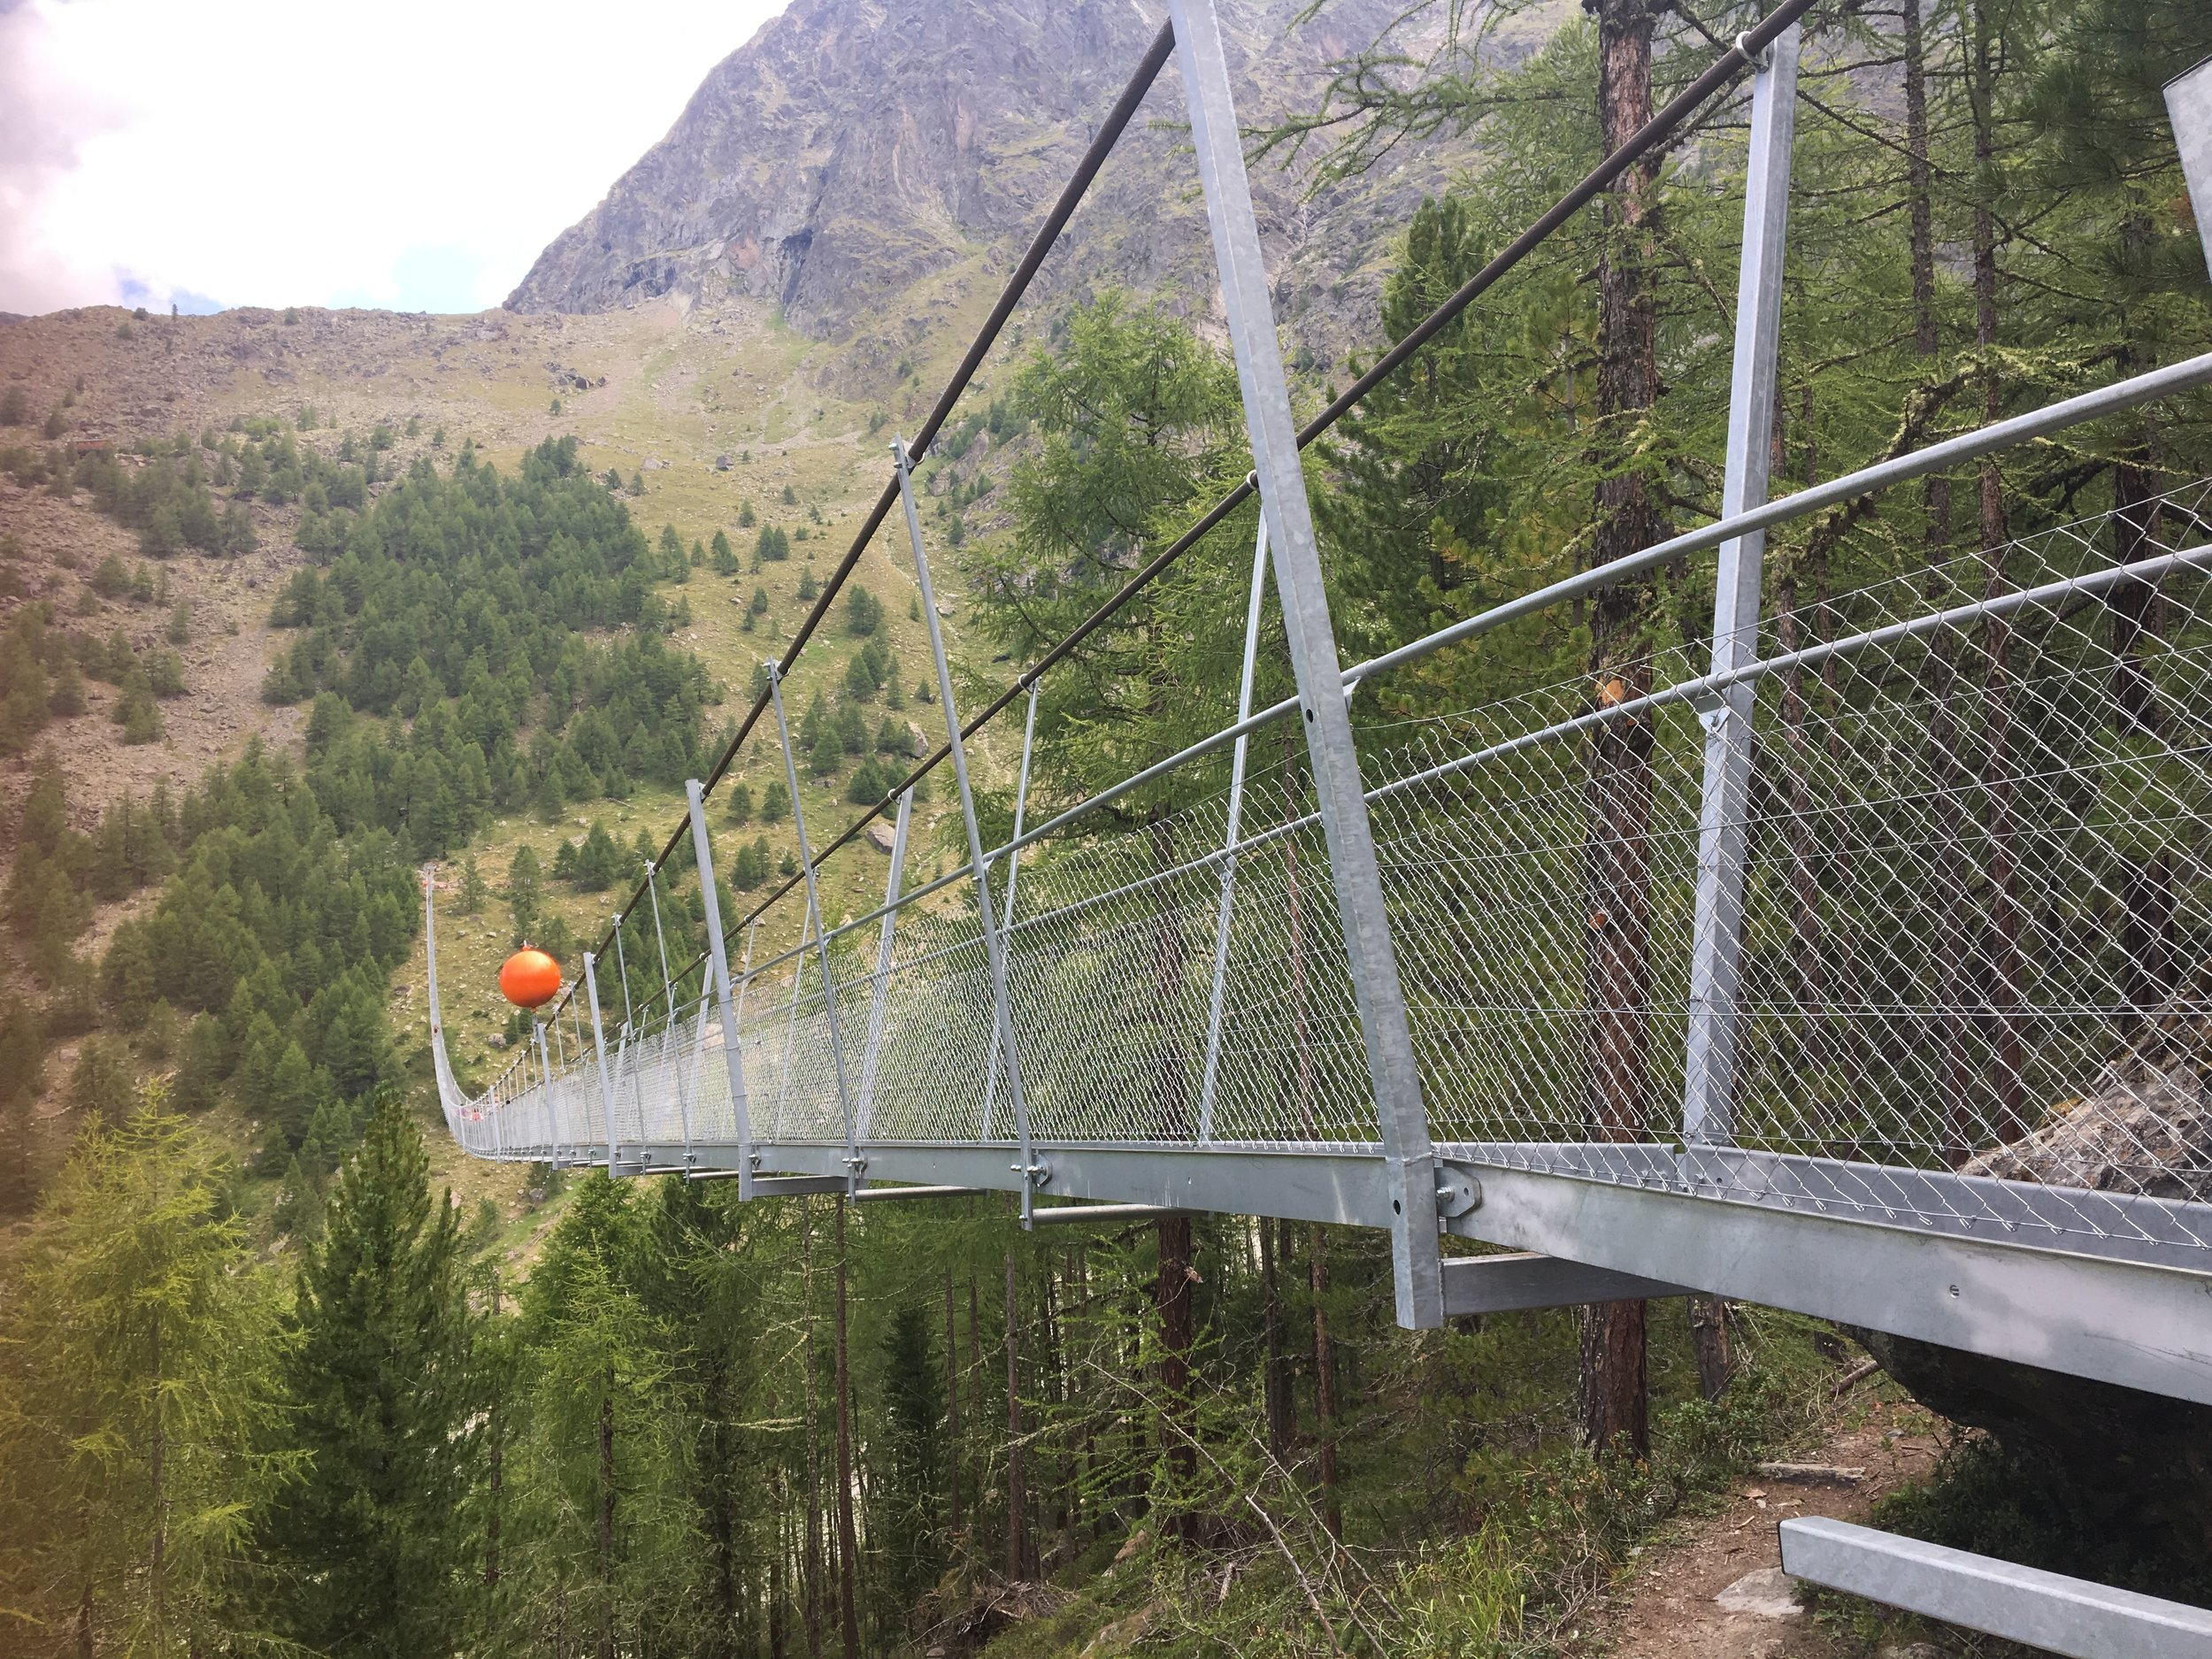 At nearly 500m long and 100m off the ground, the newly built Skywalk is claimed to be the longest suspension bridge in the world. It is on the Europaweg trail section of the Haute Route between Europa Hut and Taschalp.